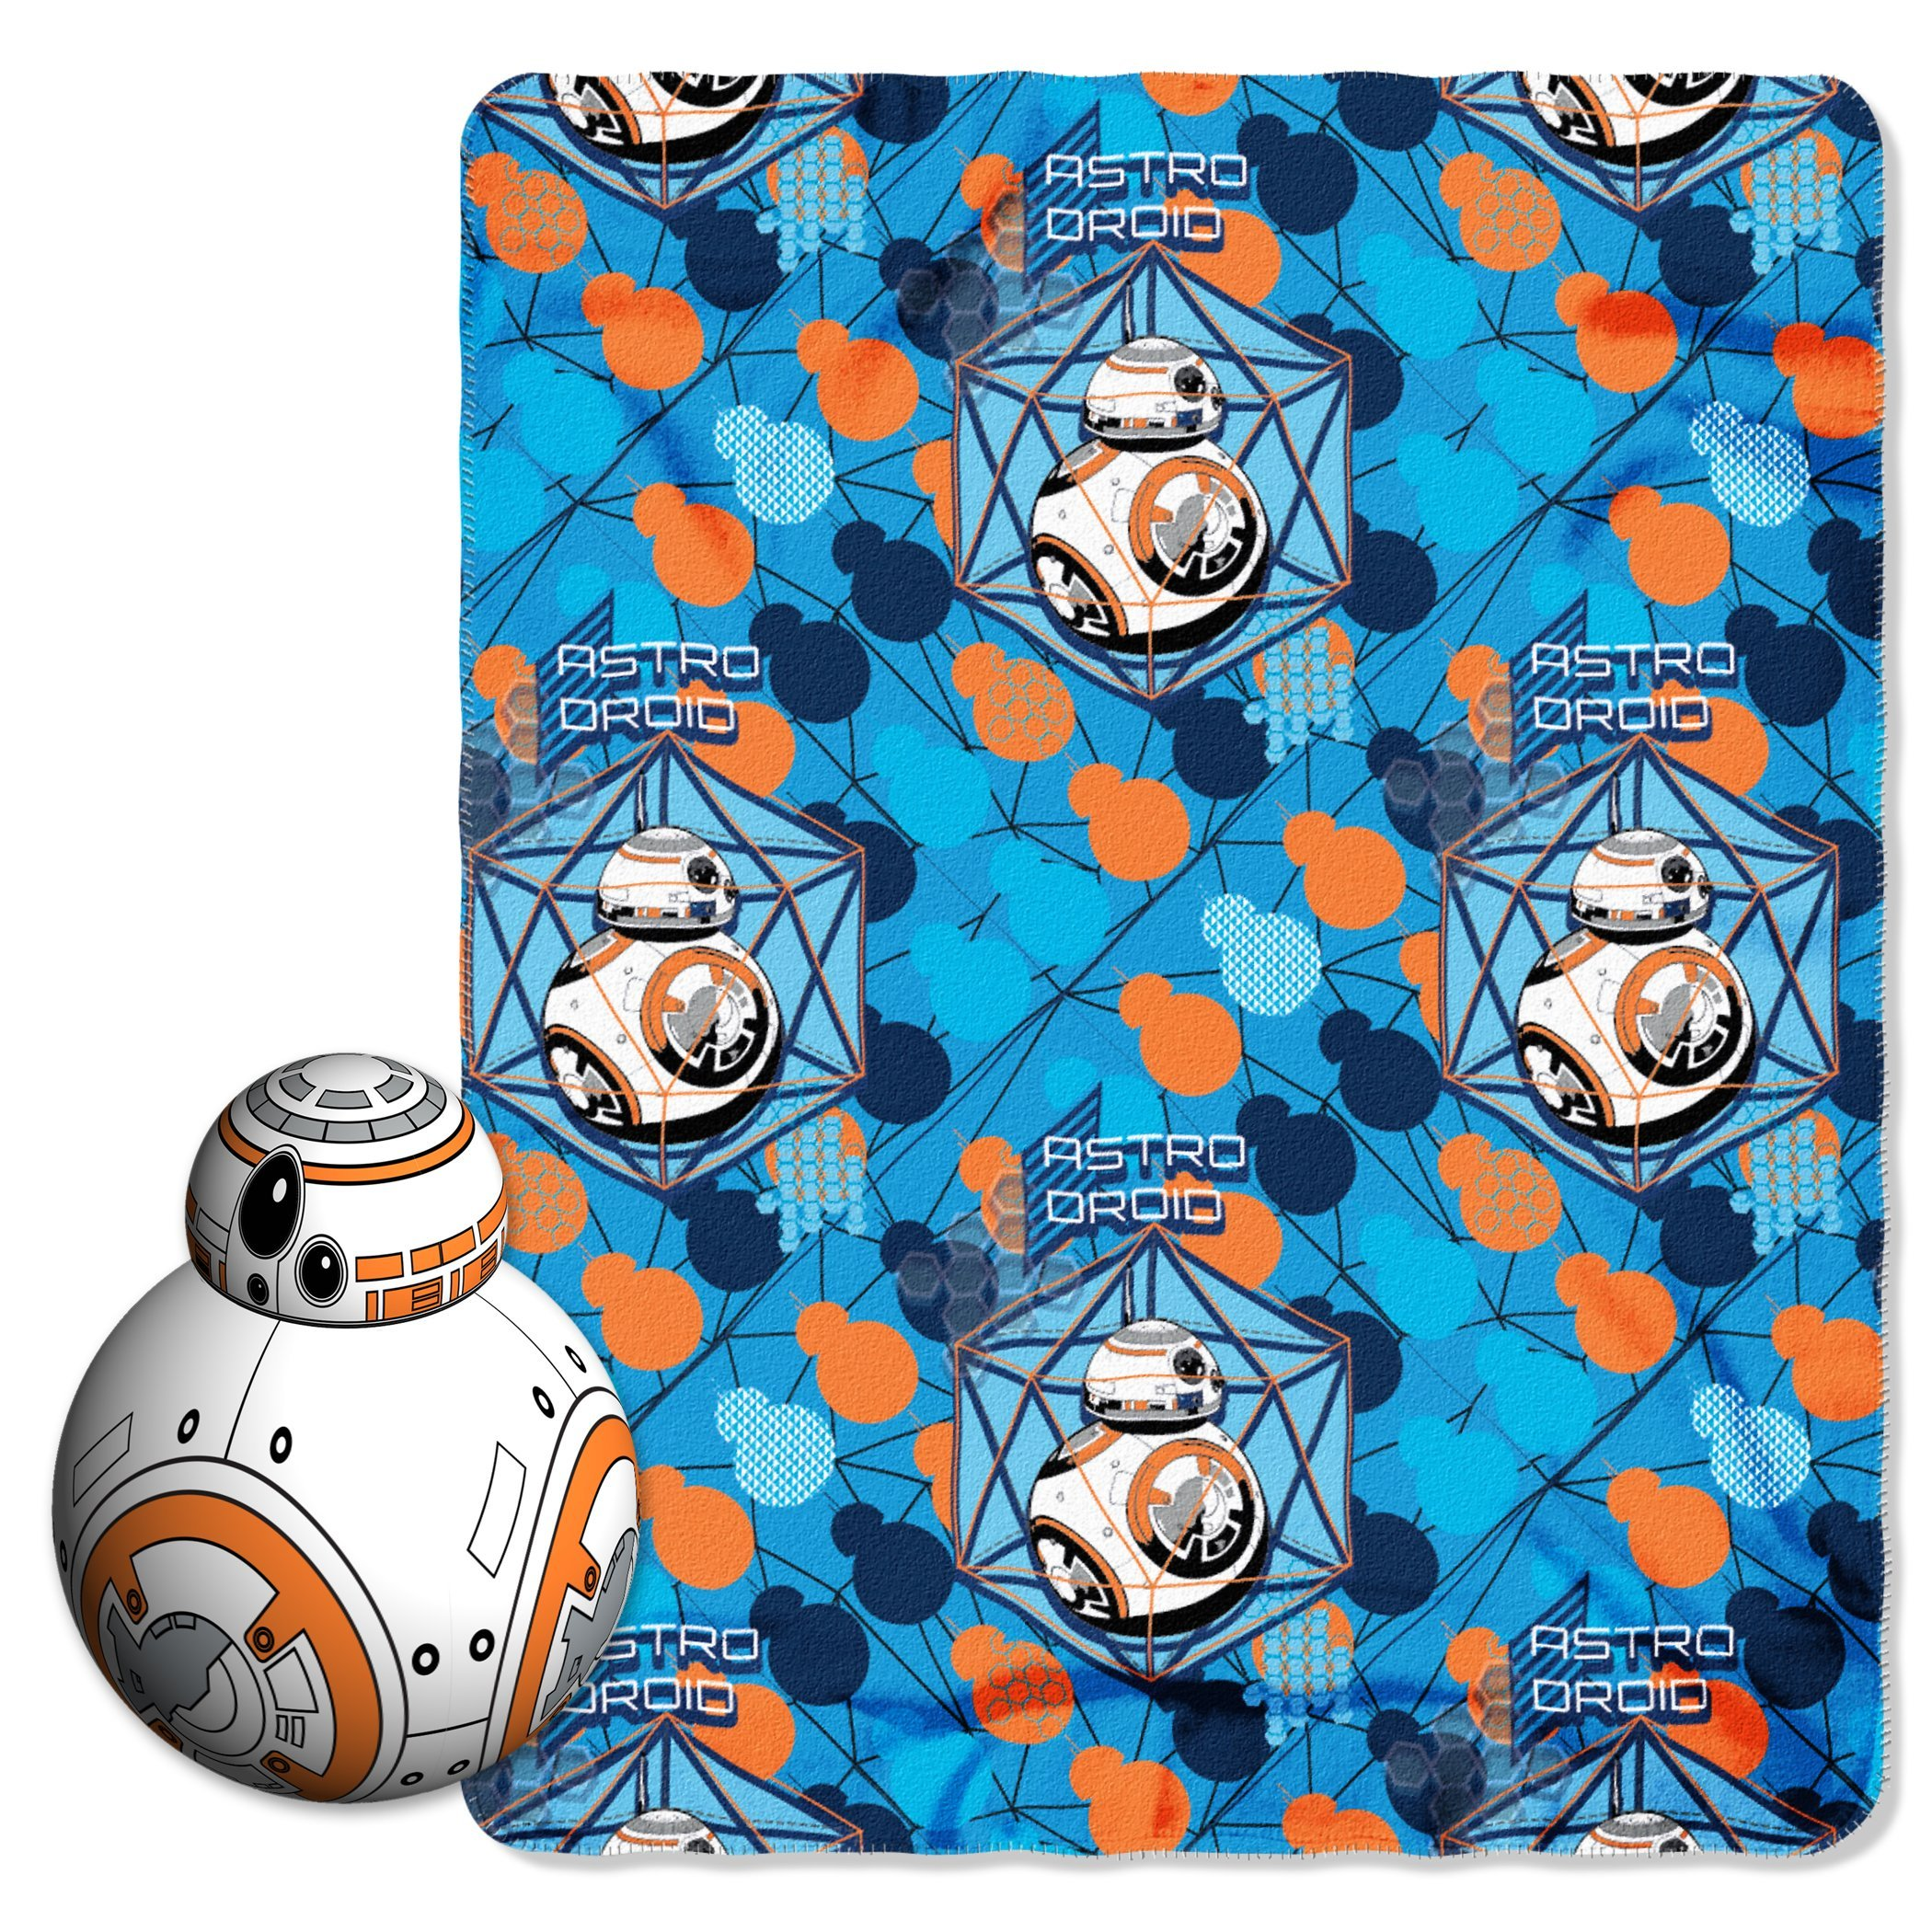 Disney's Star Wars Episode 7: The Force Awakens, ''BB-8'' Character Pillow and Fleece Throw Blanket Set, 40'' x 50'', Multi Color